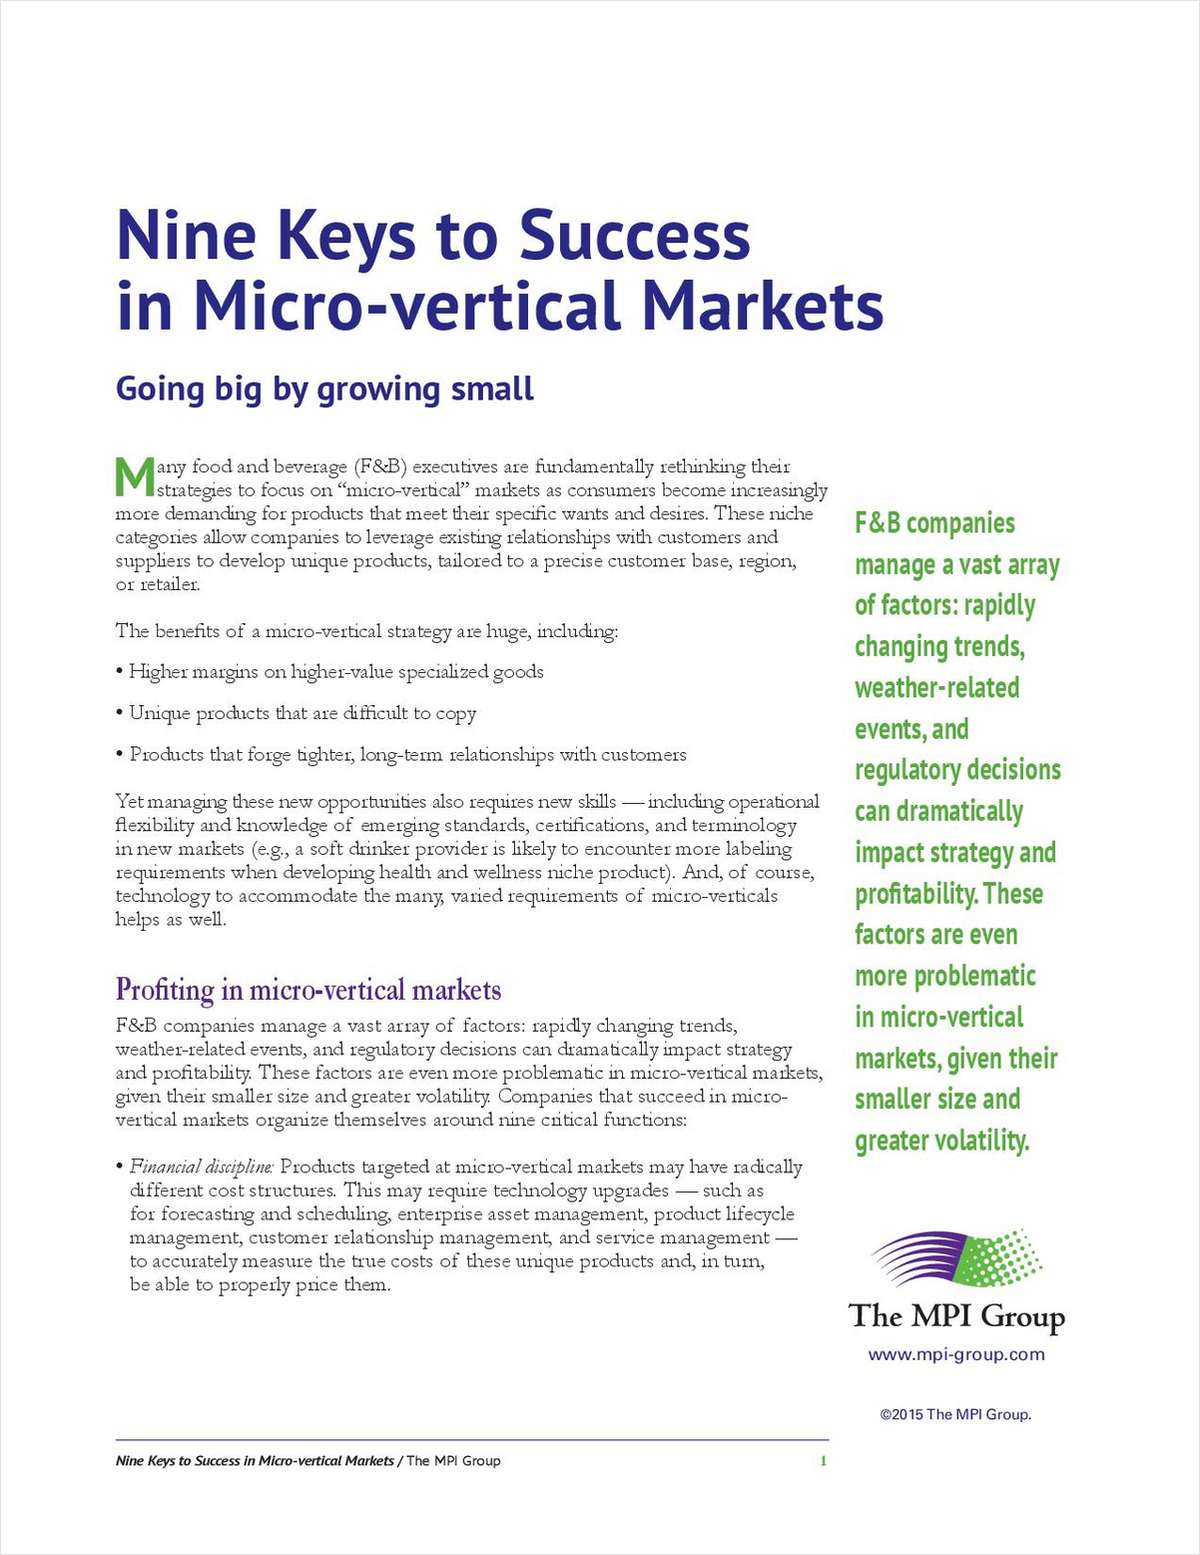 Nine Keys to Success in Micro-vertical Markets